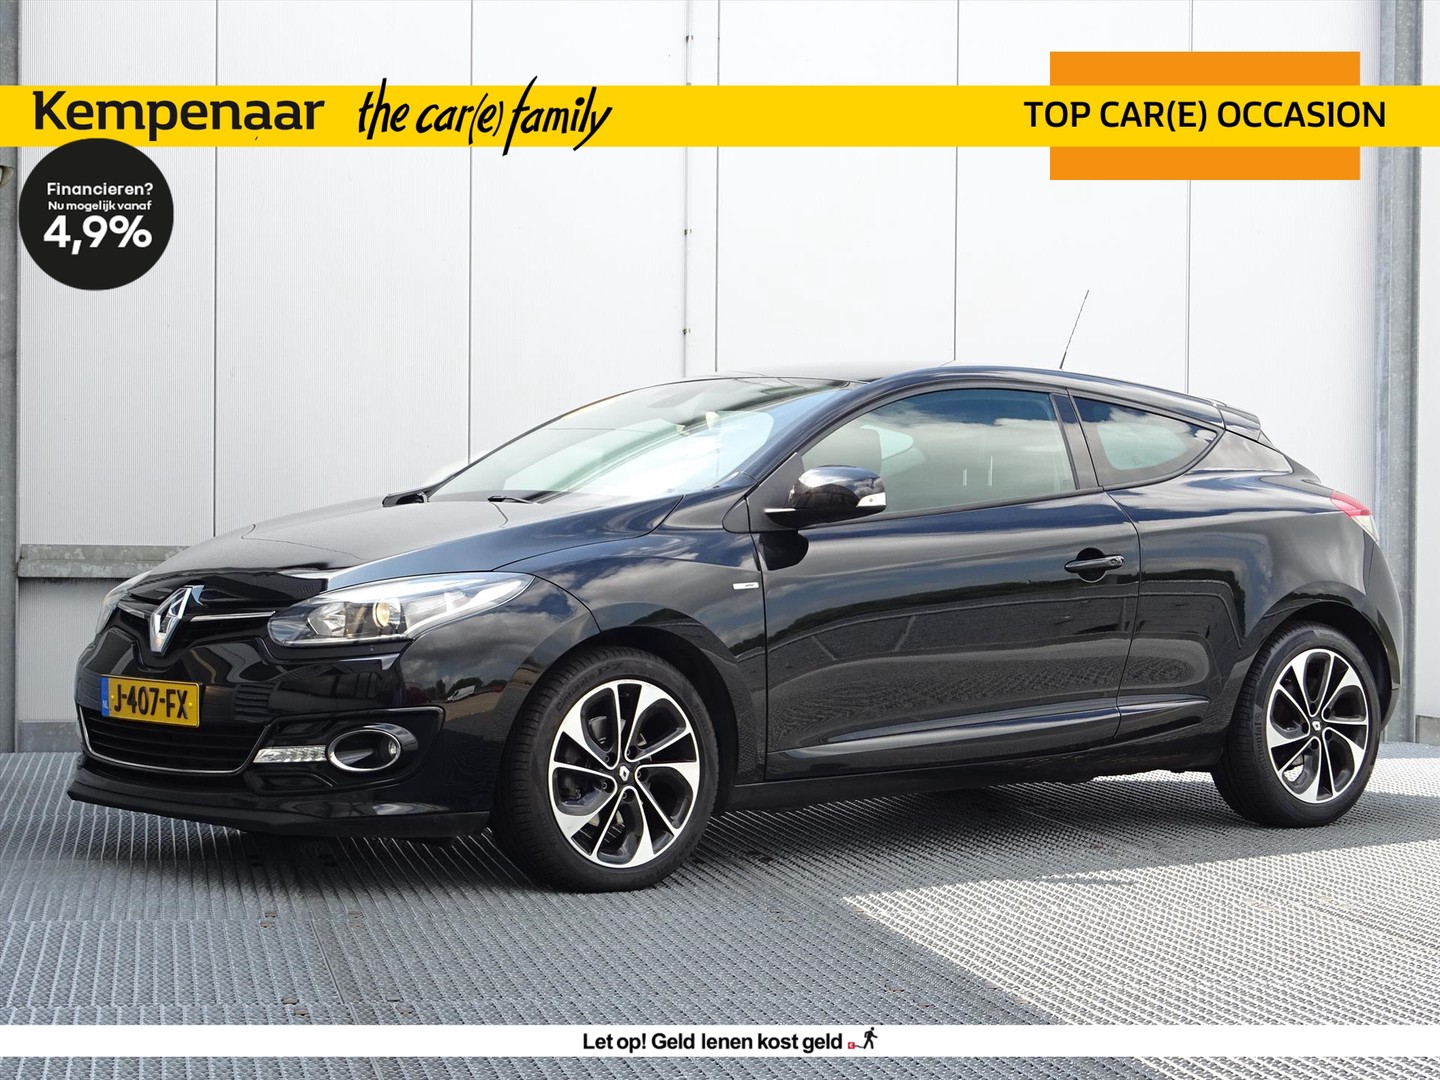 Renault Mégane 1.2 tce 97kw s&s coupe bose